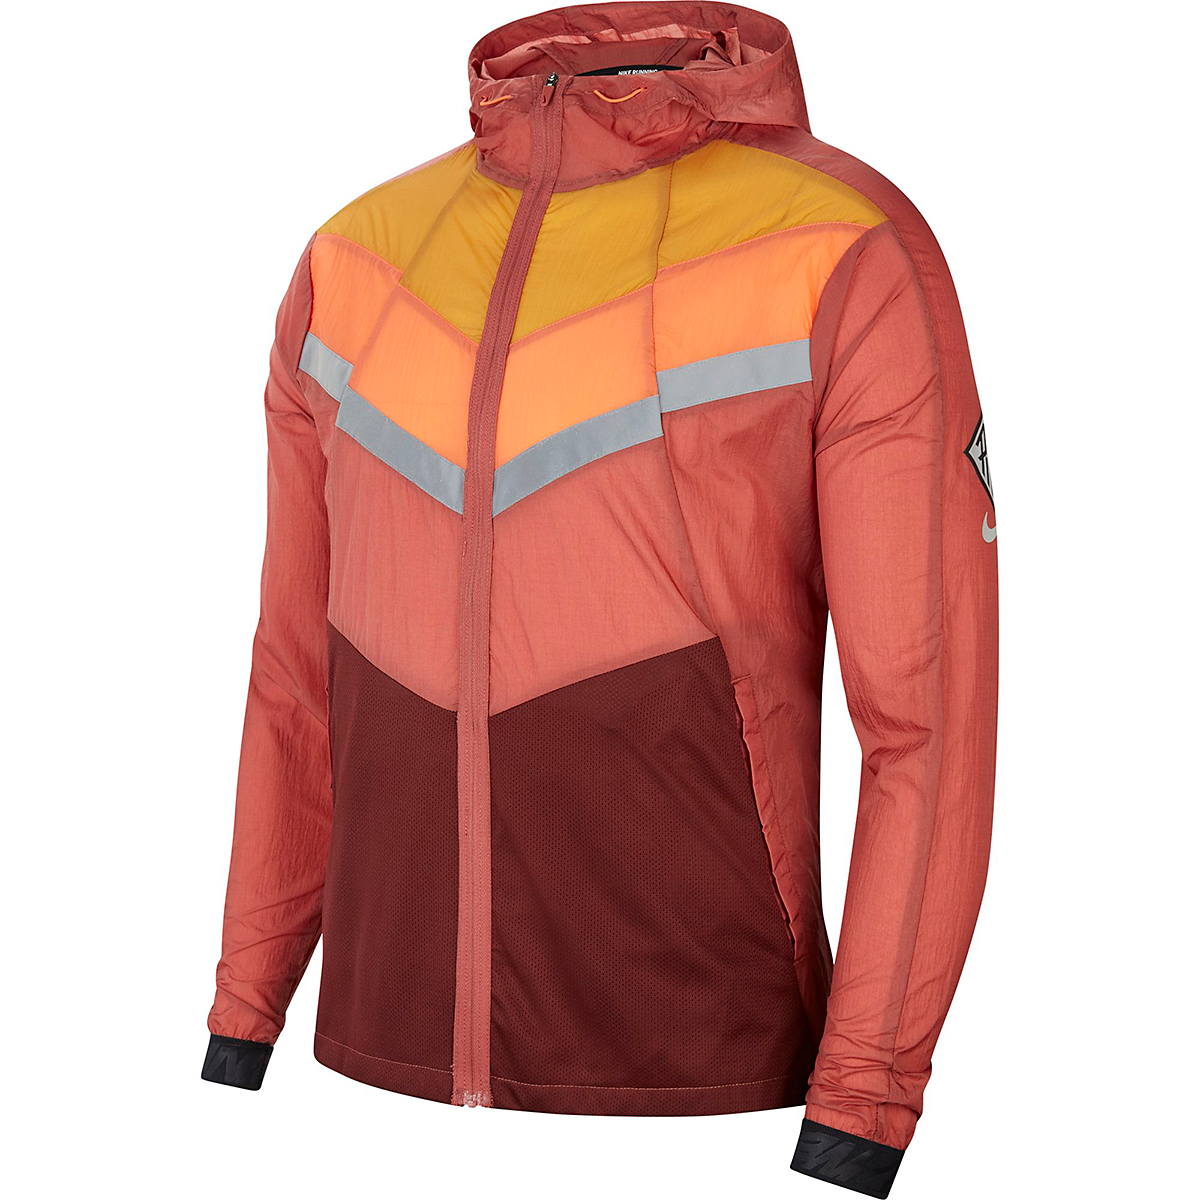 Men's Nike Windrunner Wild Run Running Jacket - Color: Claystone Red/Chutney/Camellia - Size: S, Claystone Red/Chutney/Camellia, large, image 3